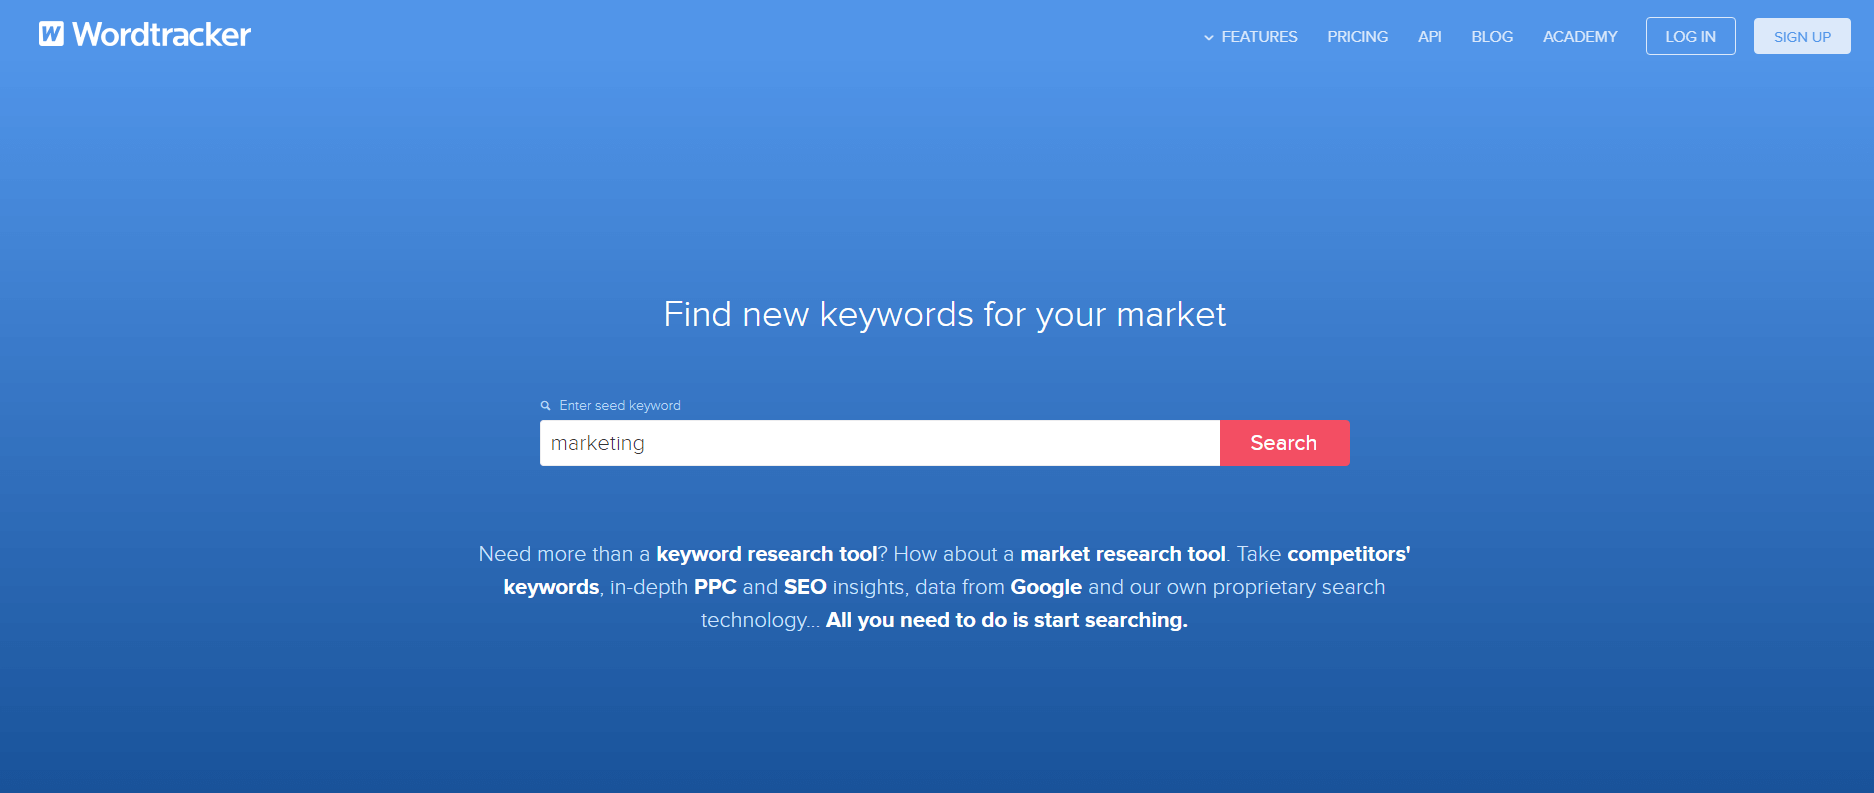 Using Wordtracker to find keywords